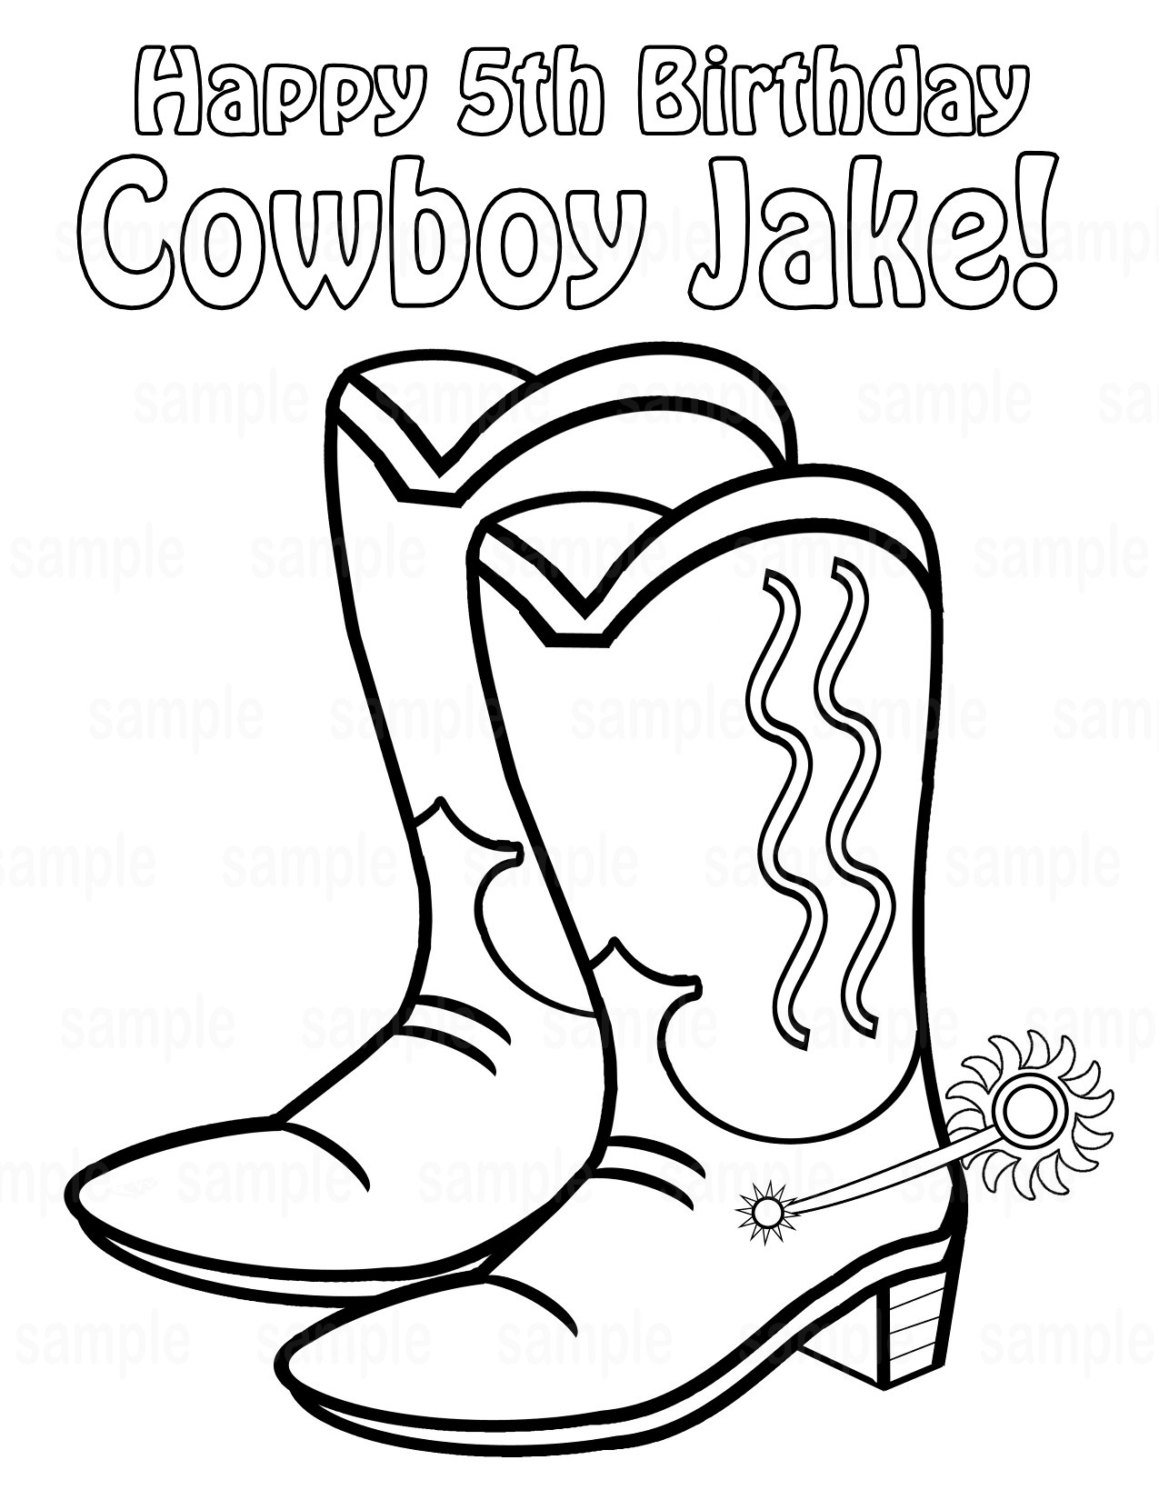 Cowboy Boots Drawing at GetDrawings.com | Free for personal use ...